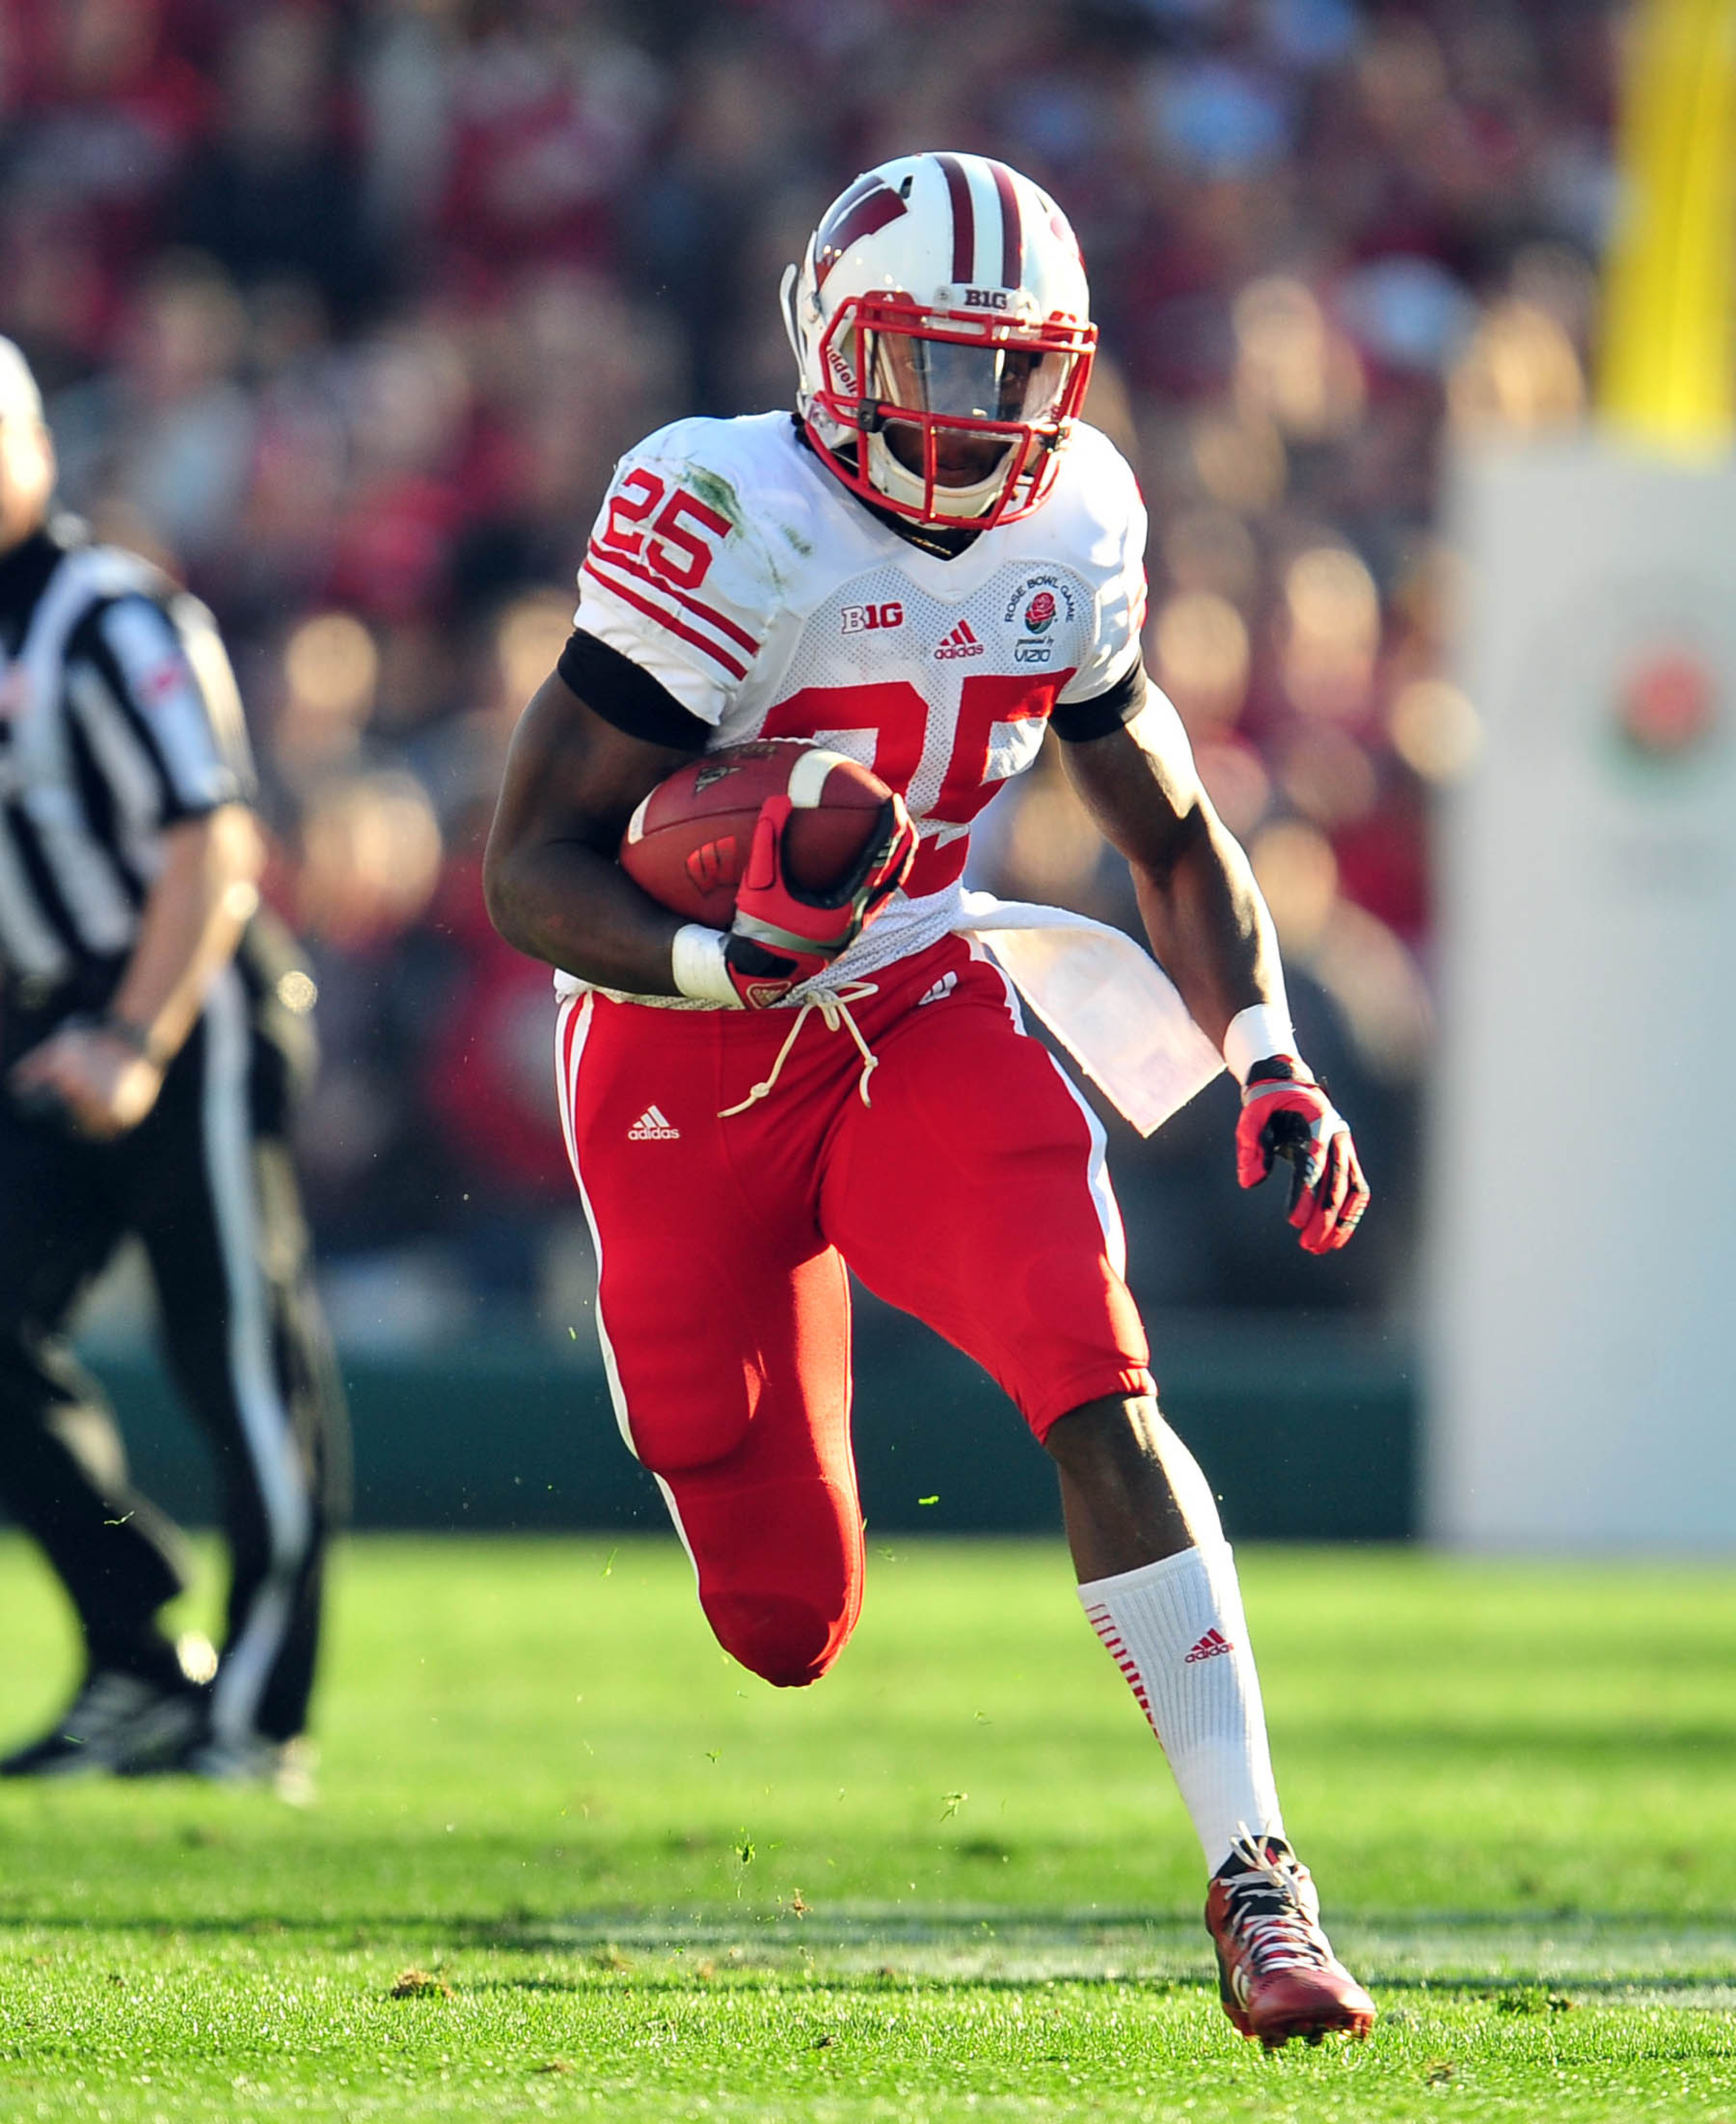 Melvin Gordon might have a case for the most underrated player in NCAA Football 14.